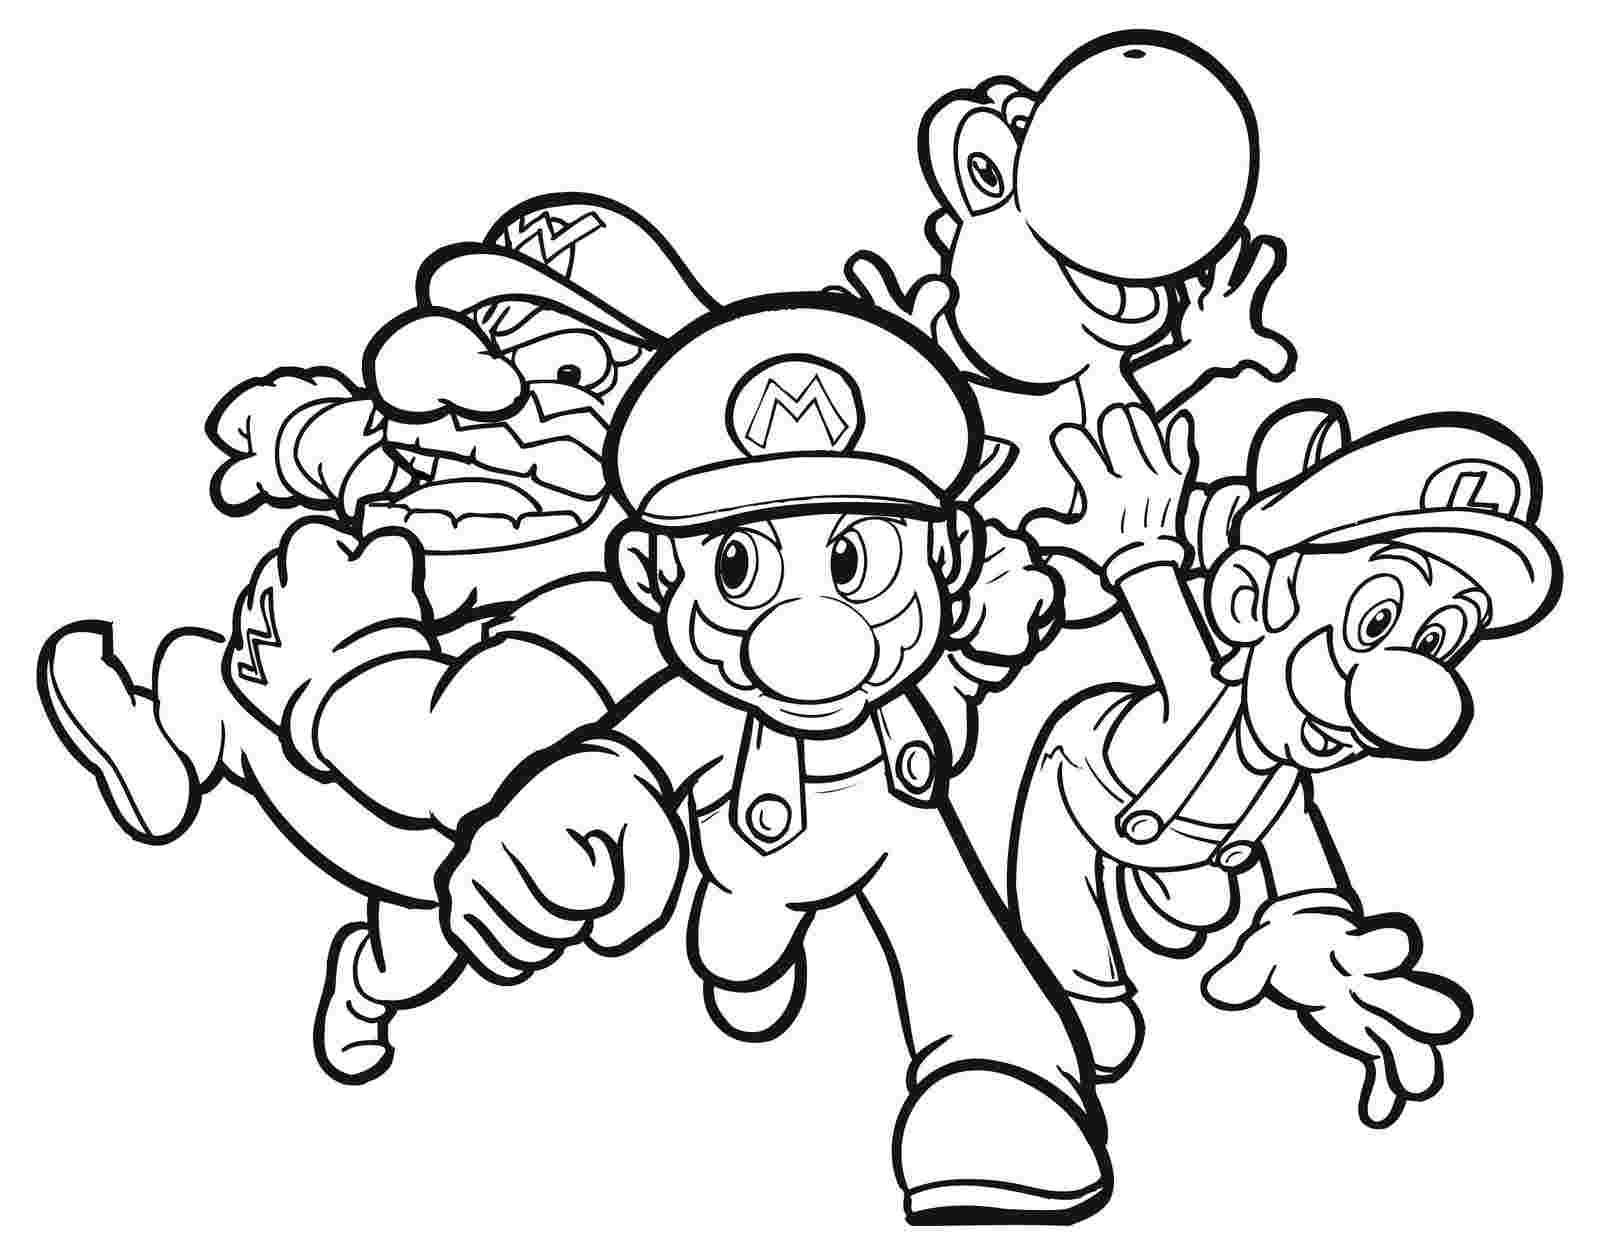 1600x1255 Mario Coloring Pages